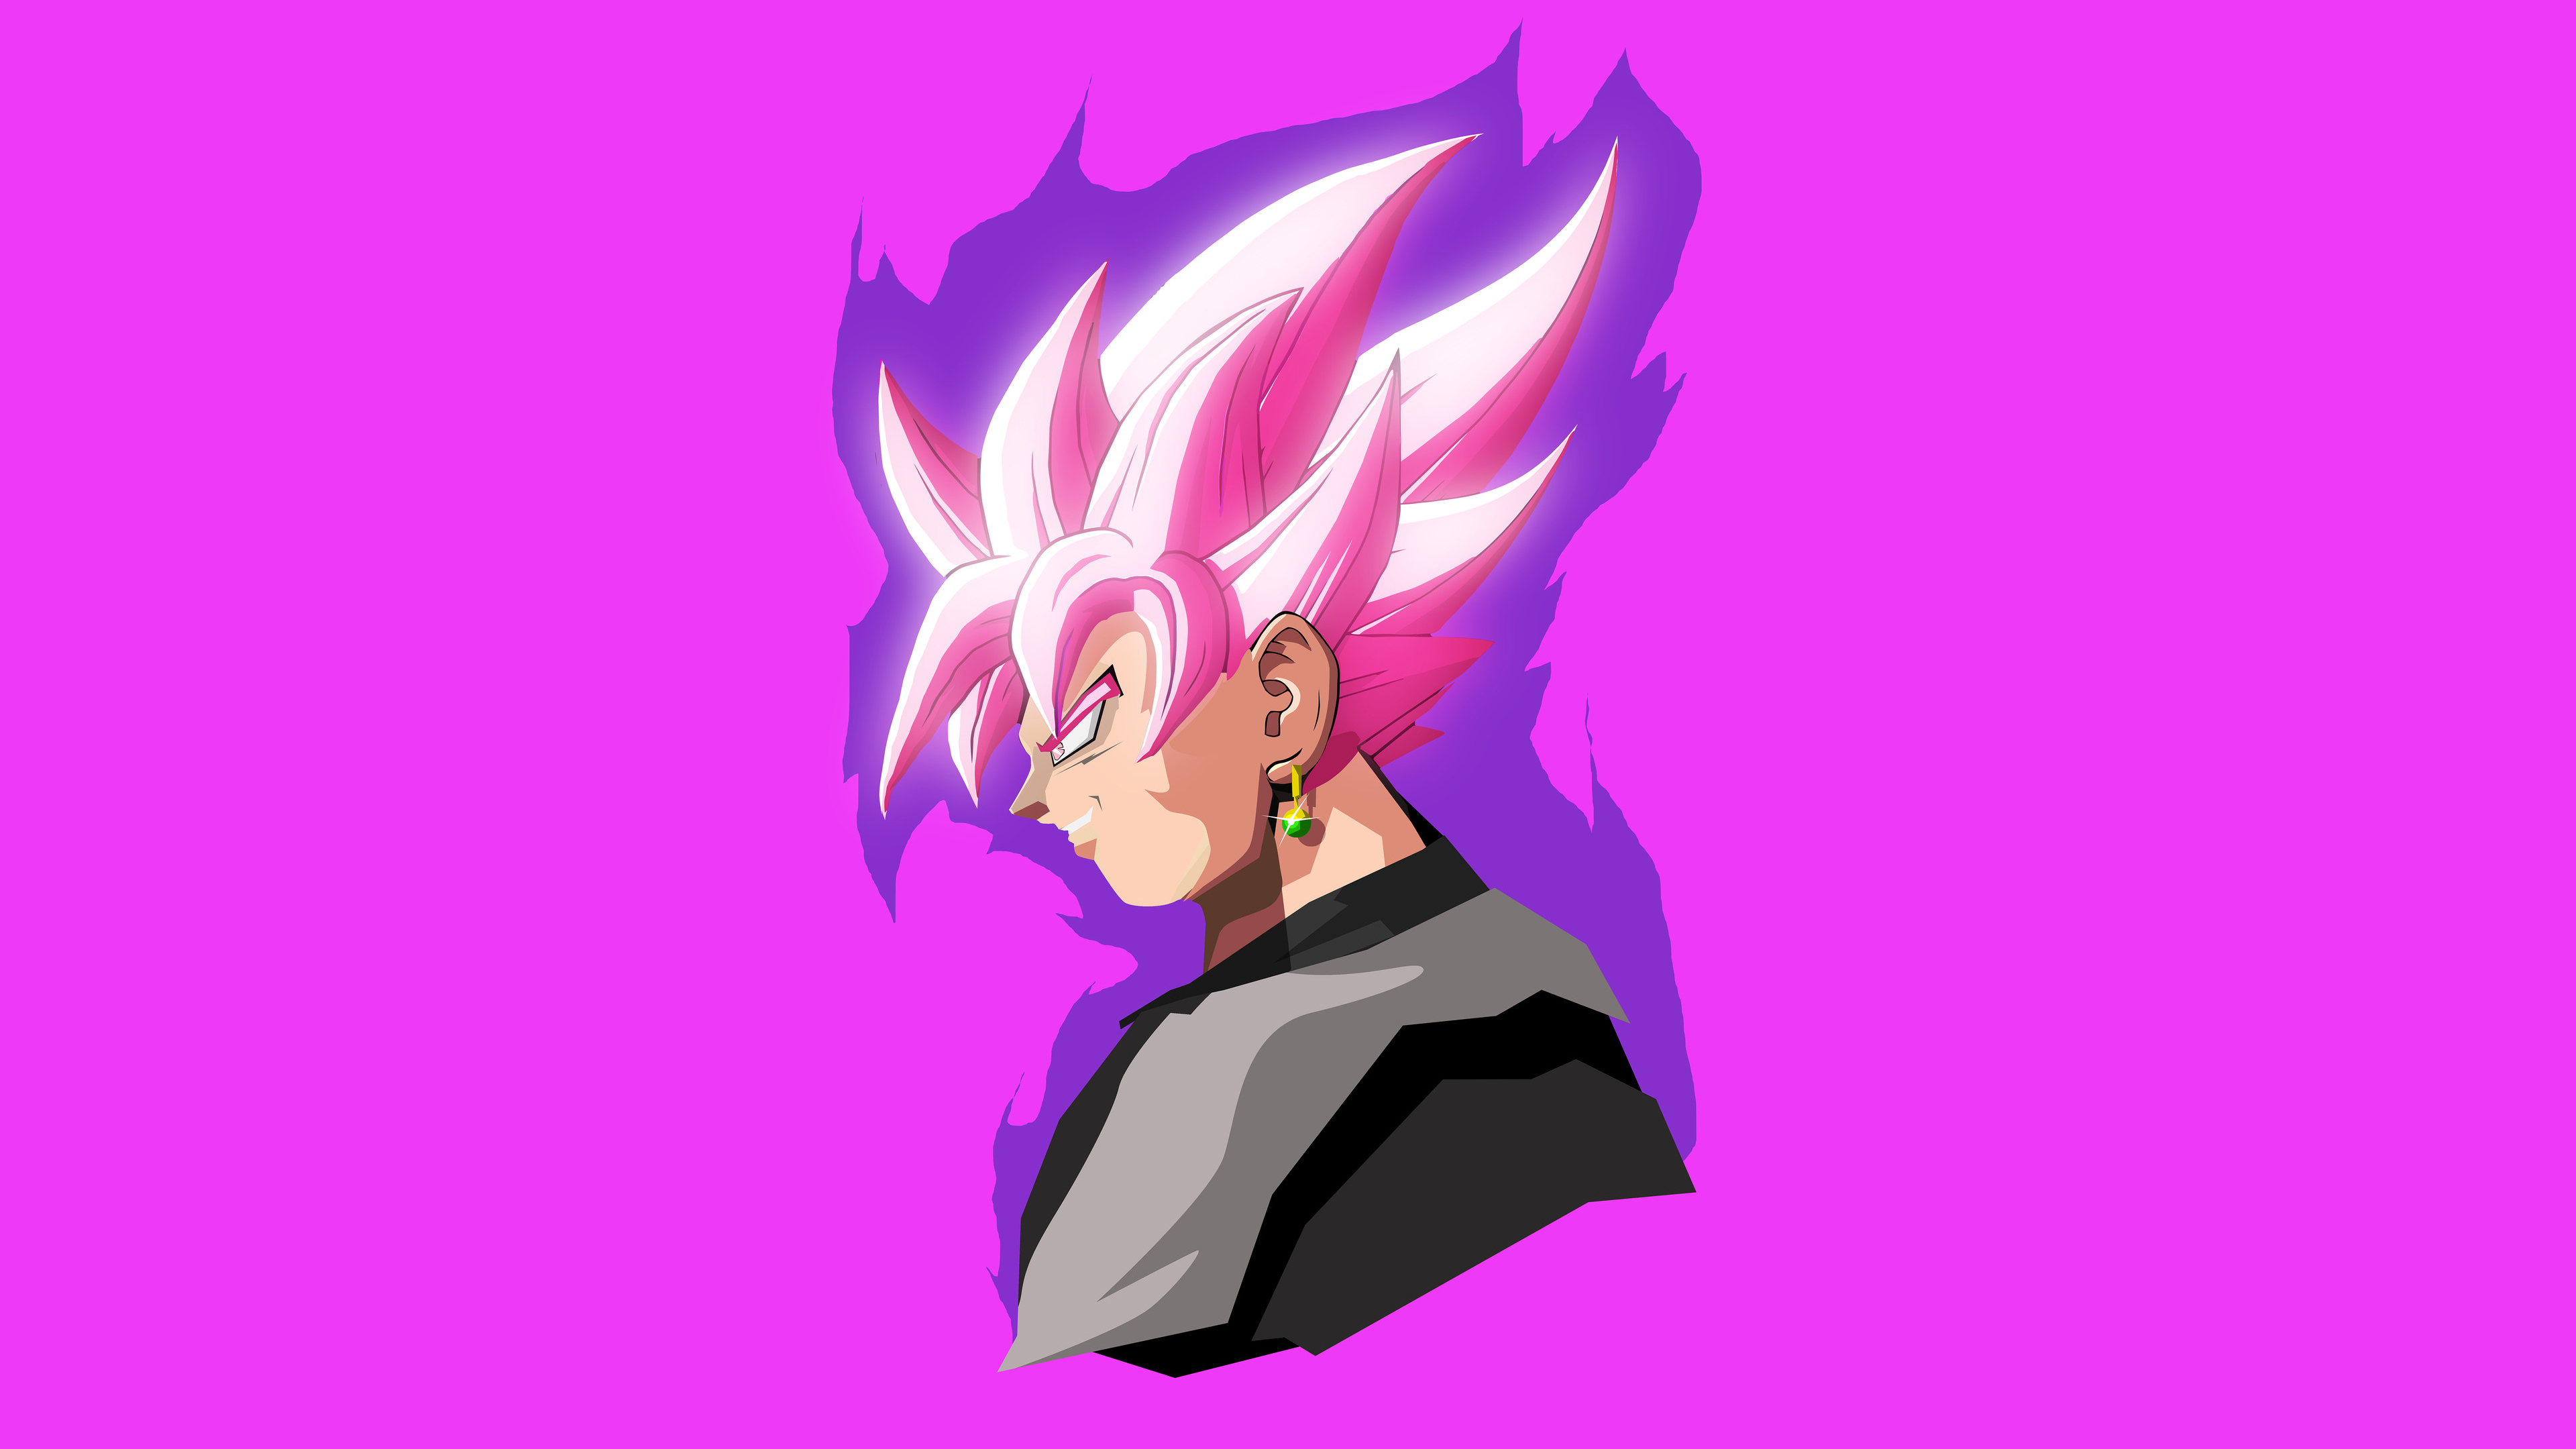 Goku Dragon Ball Super Minimal Artwork 4k Wallpapers Hd